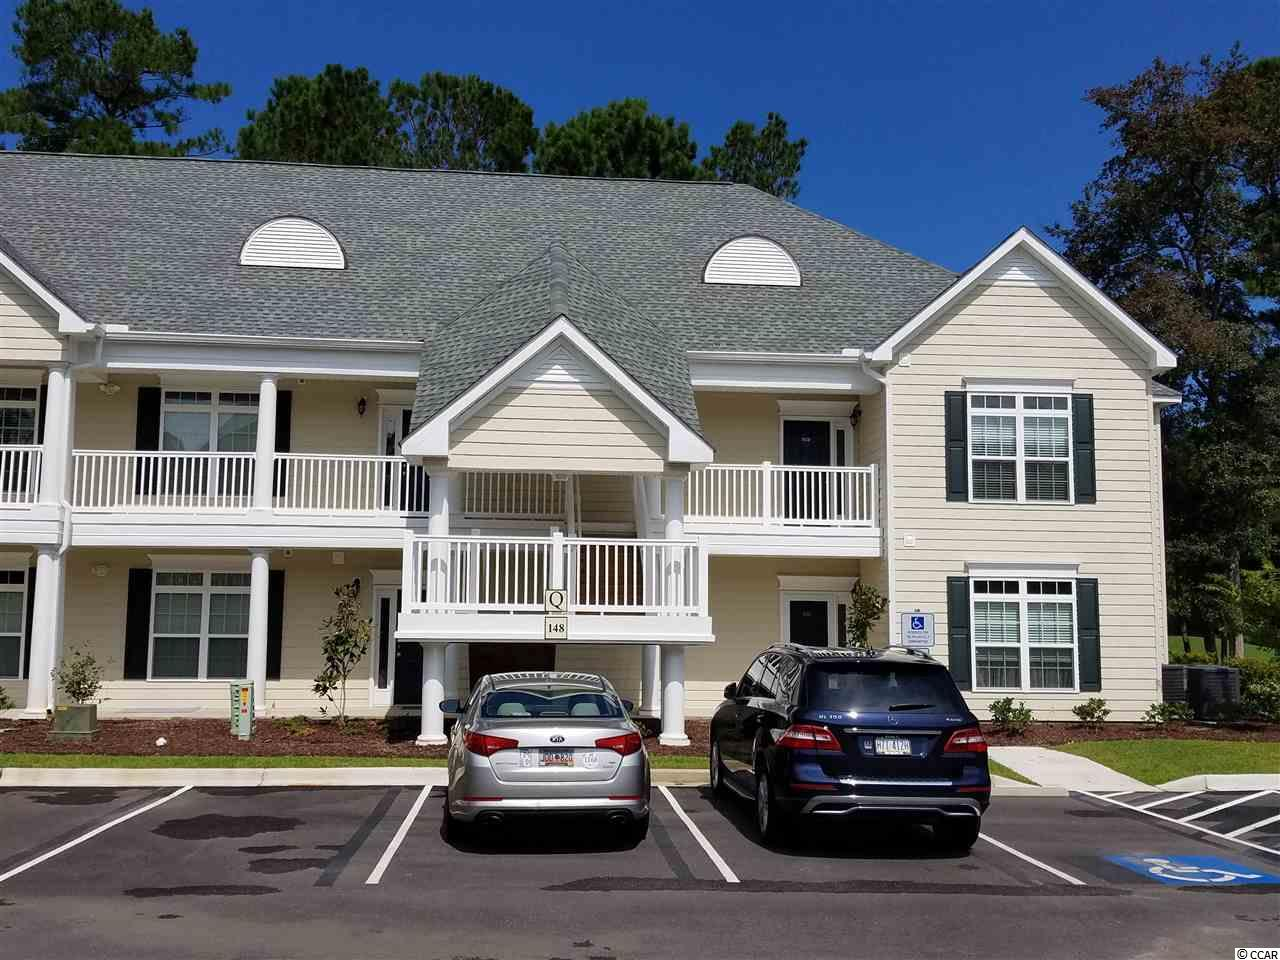 VILLAGE AT GLENS condo for sale in Little River, SC